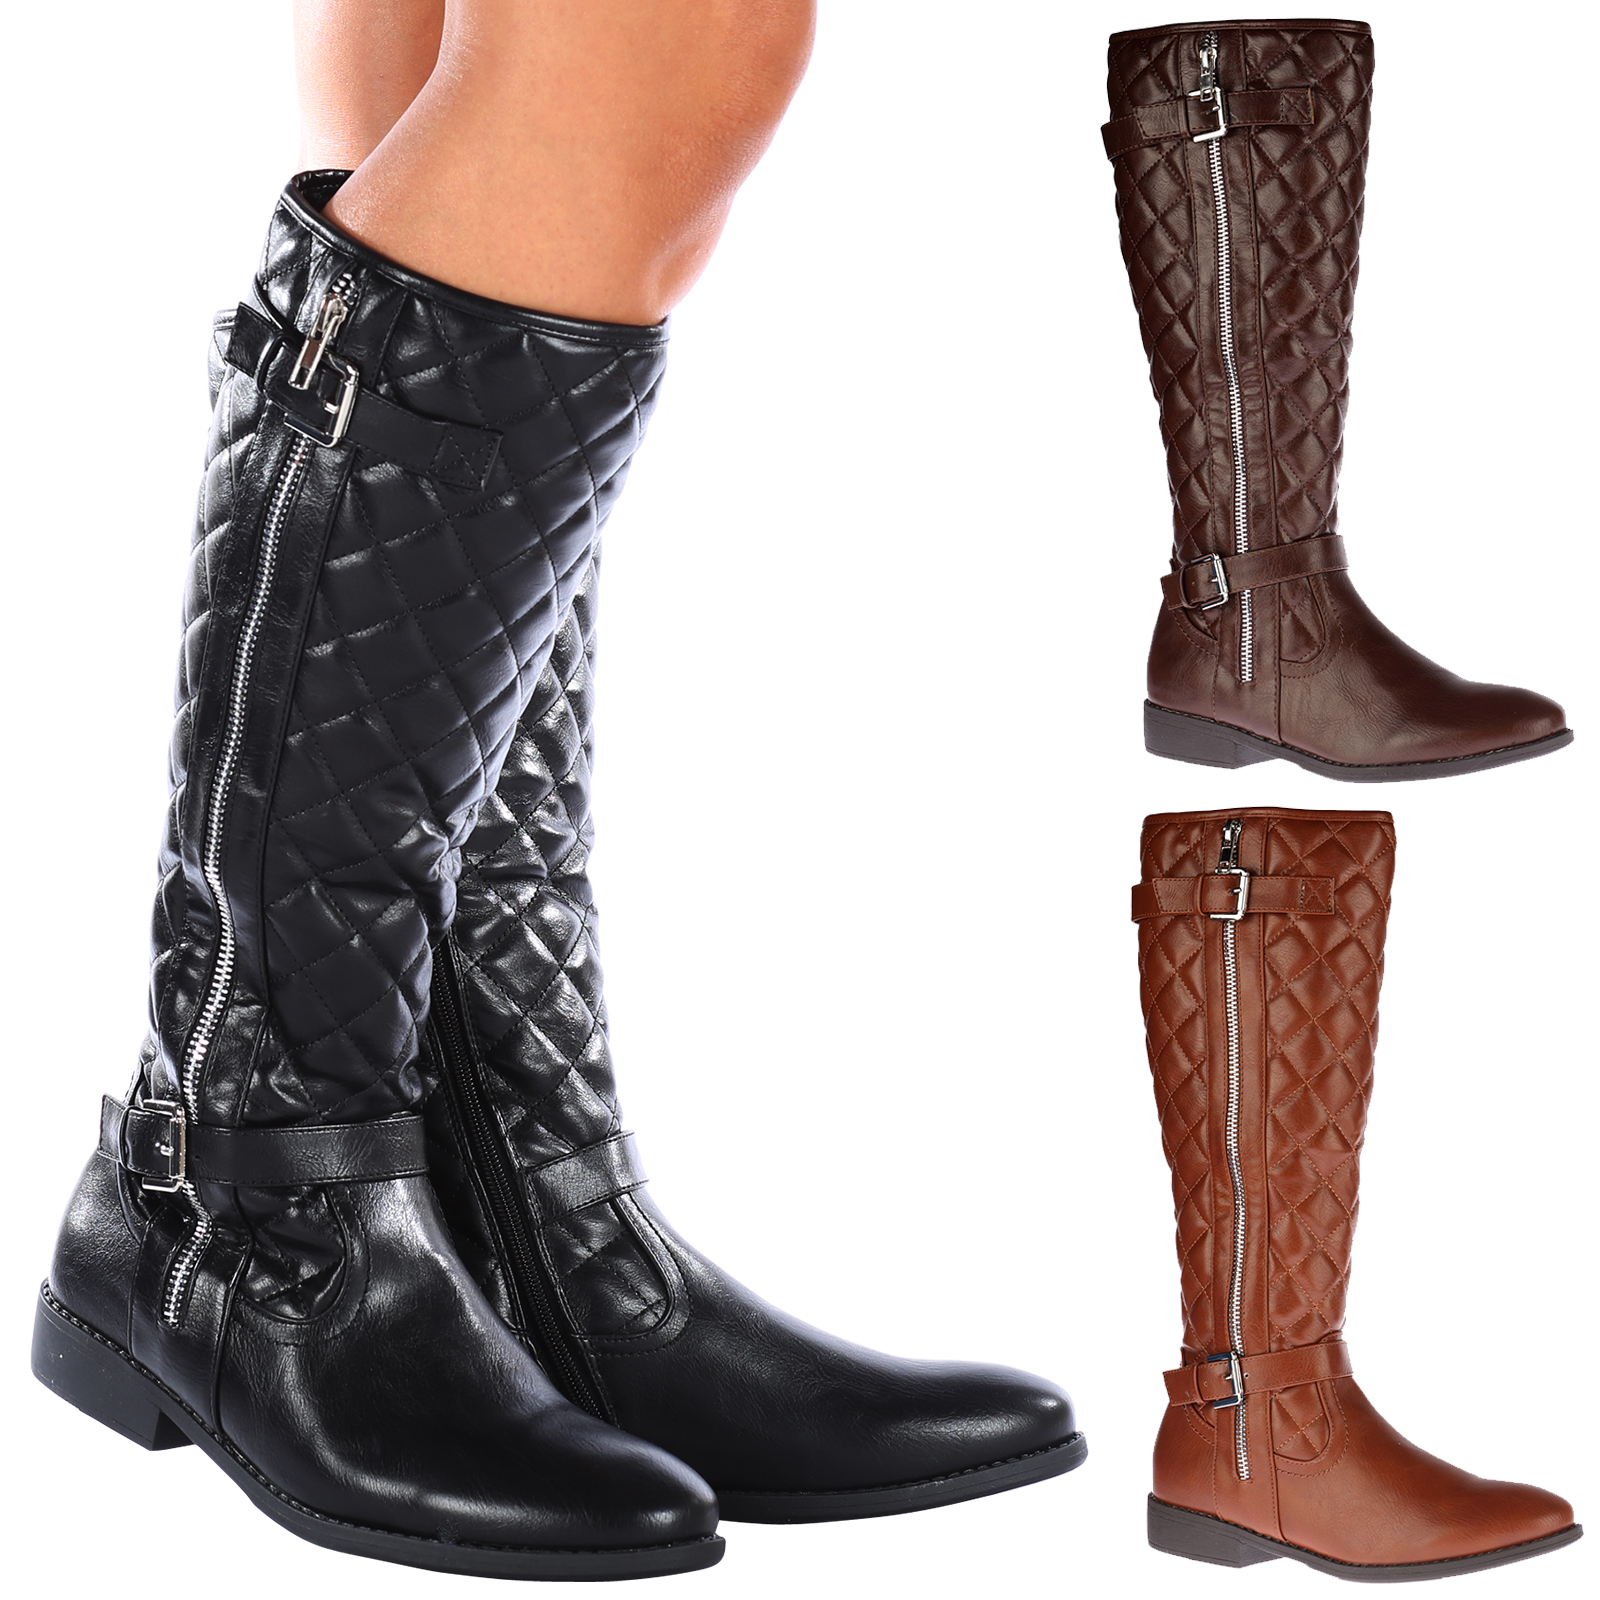 aimee womens knee high quilted zip up mid calf